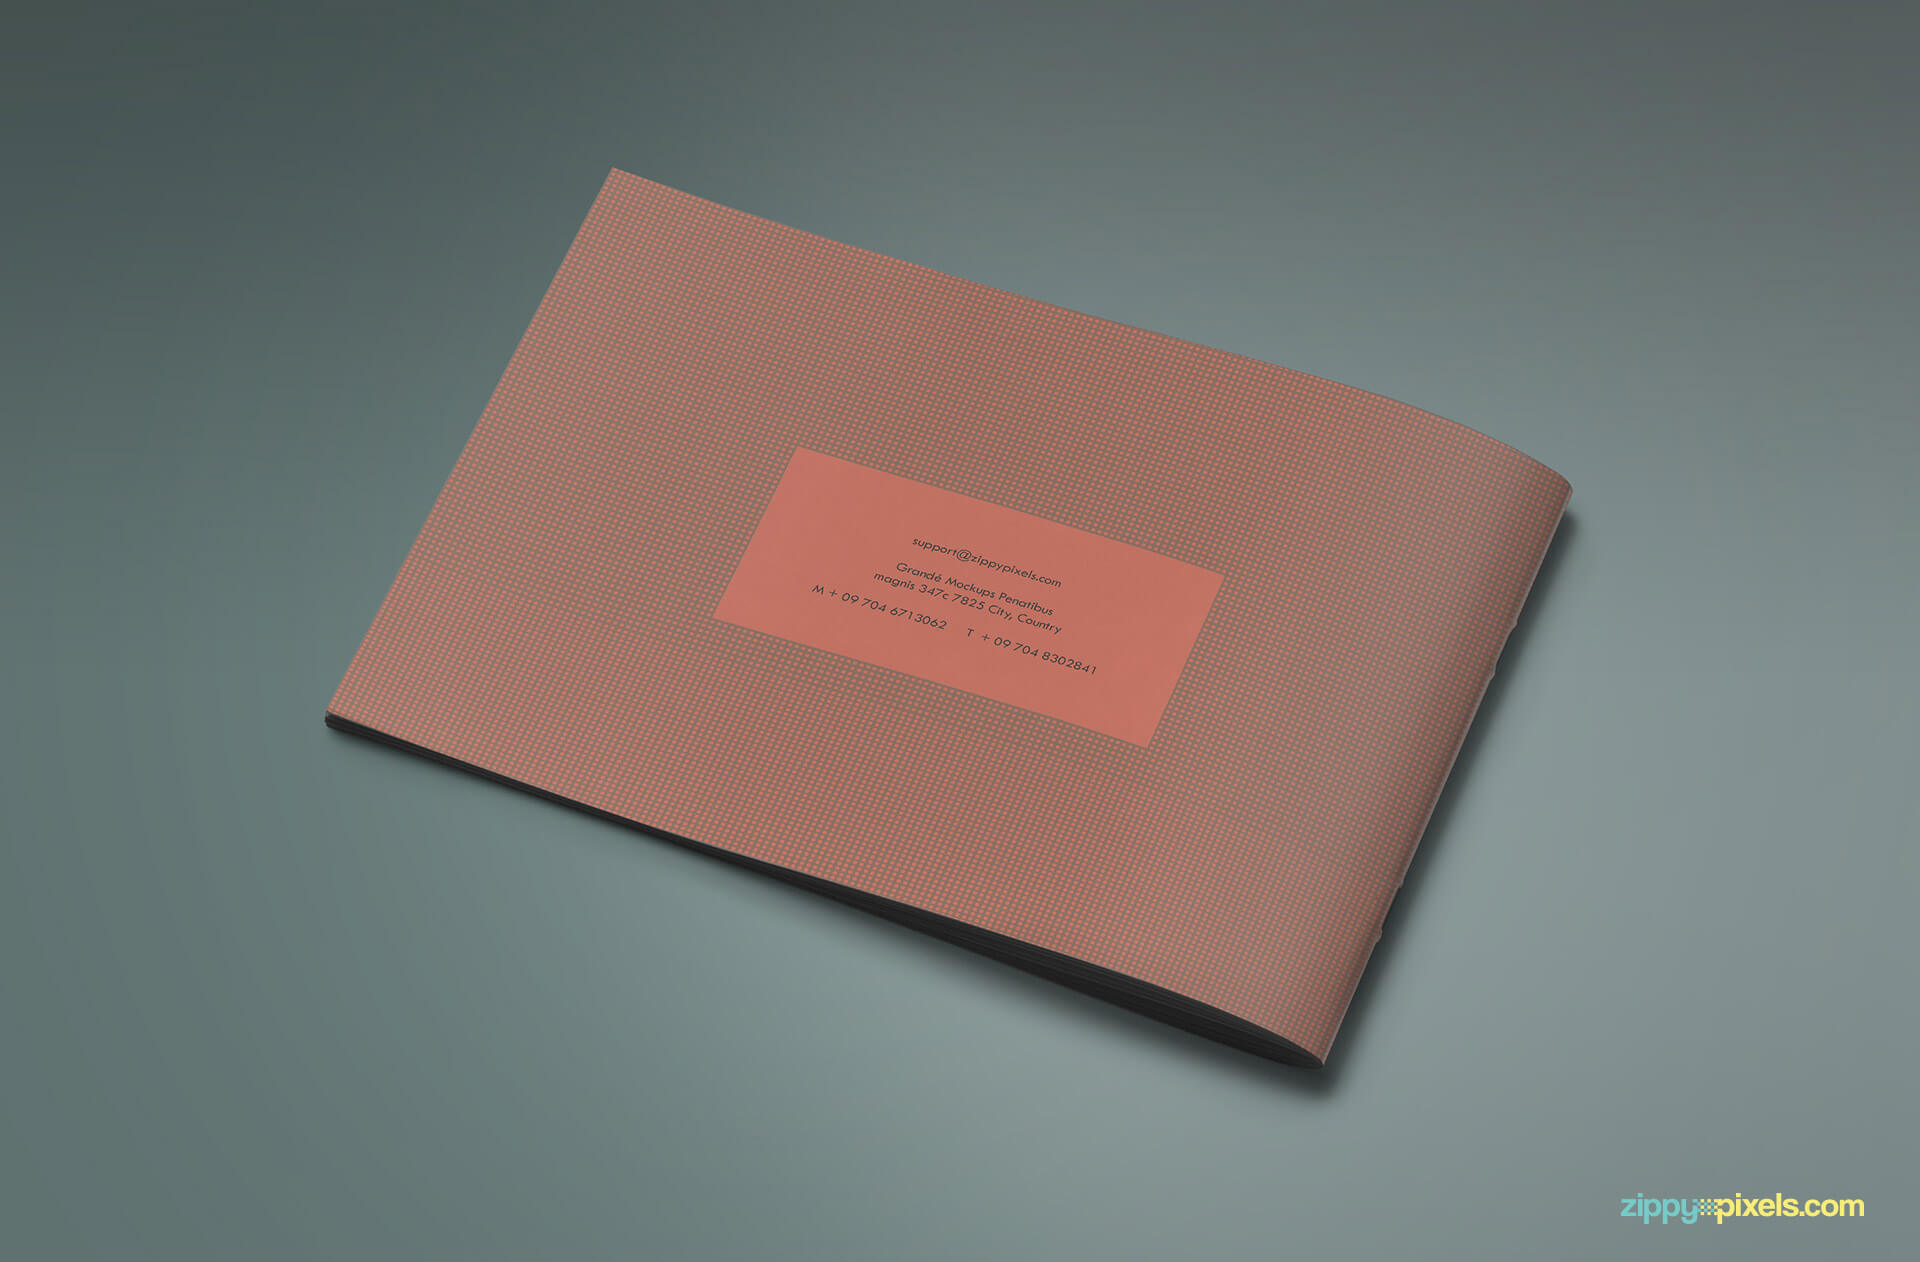 Back Cover of Brand Book - Brand Guidlines Template